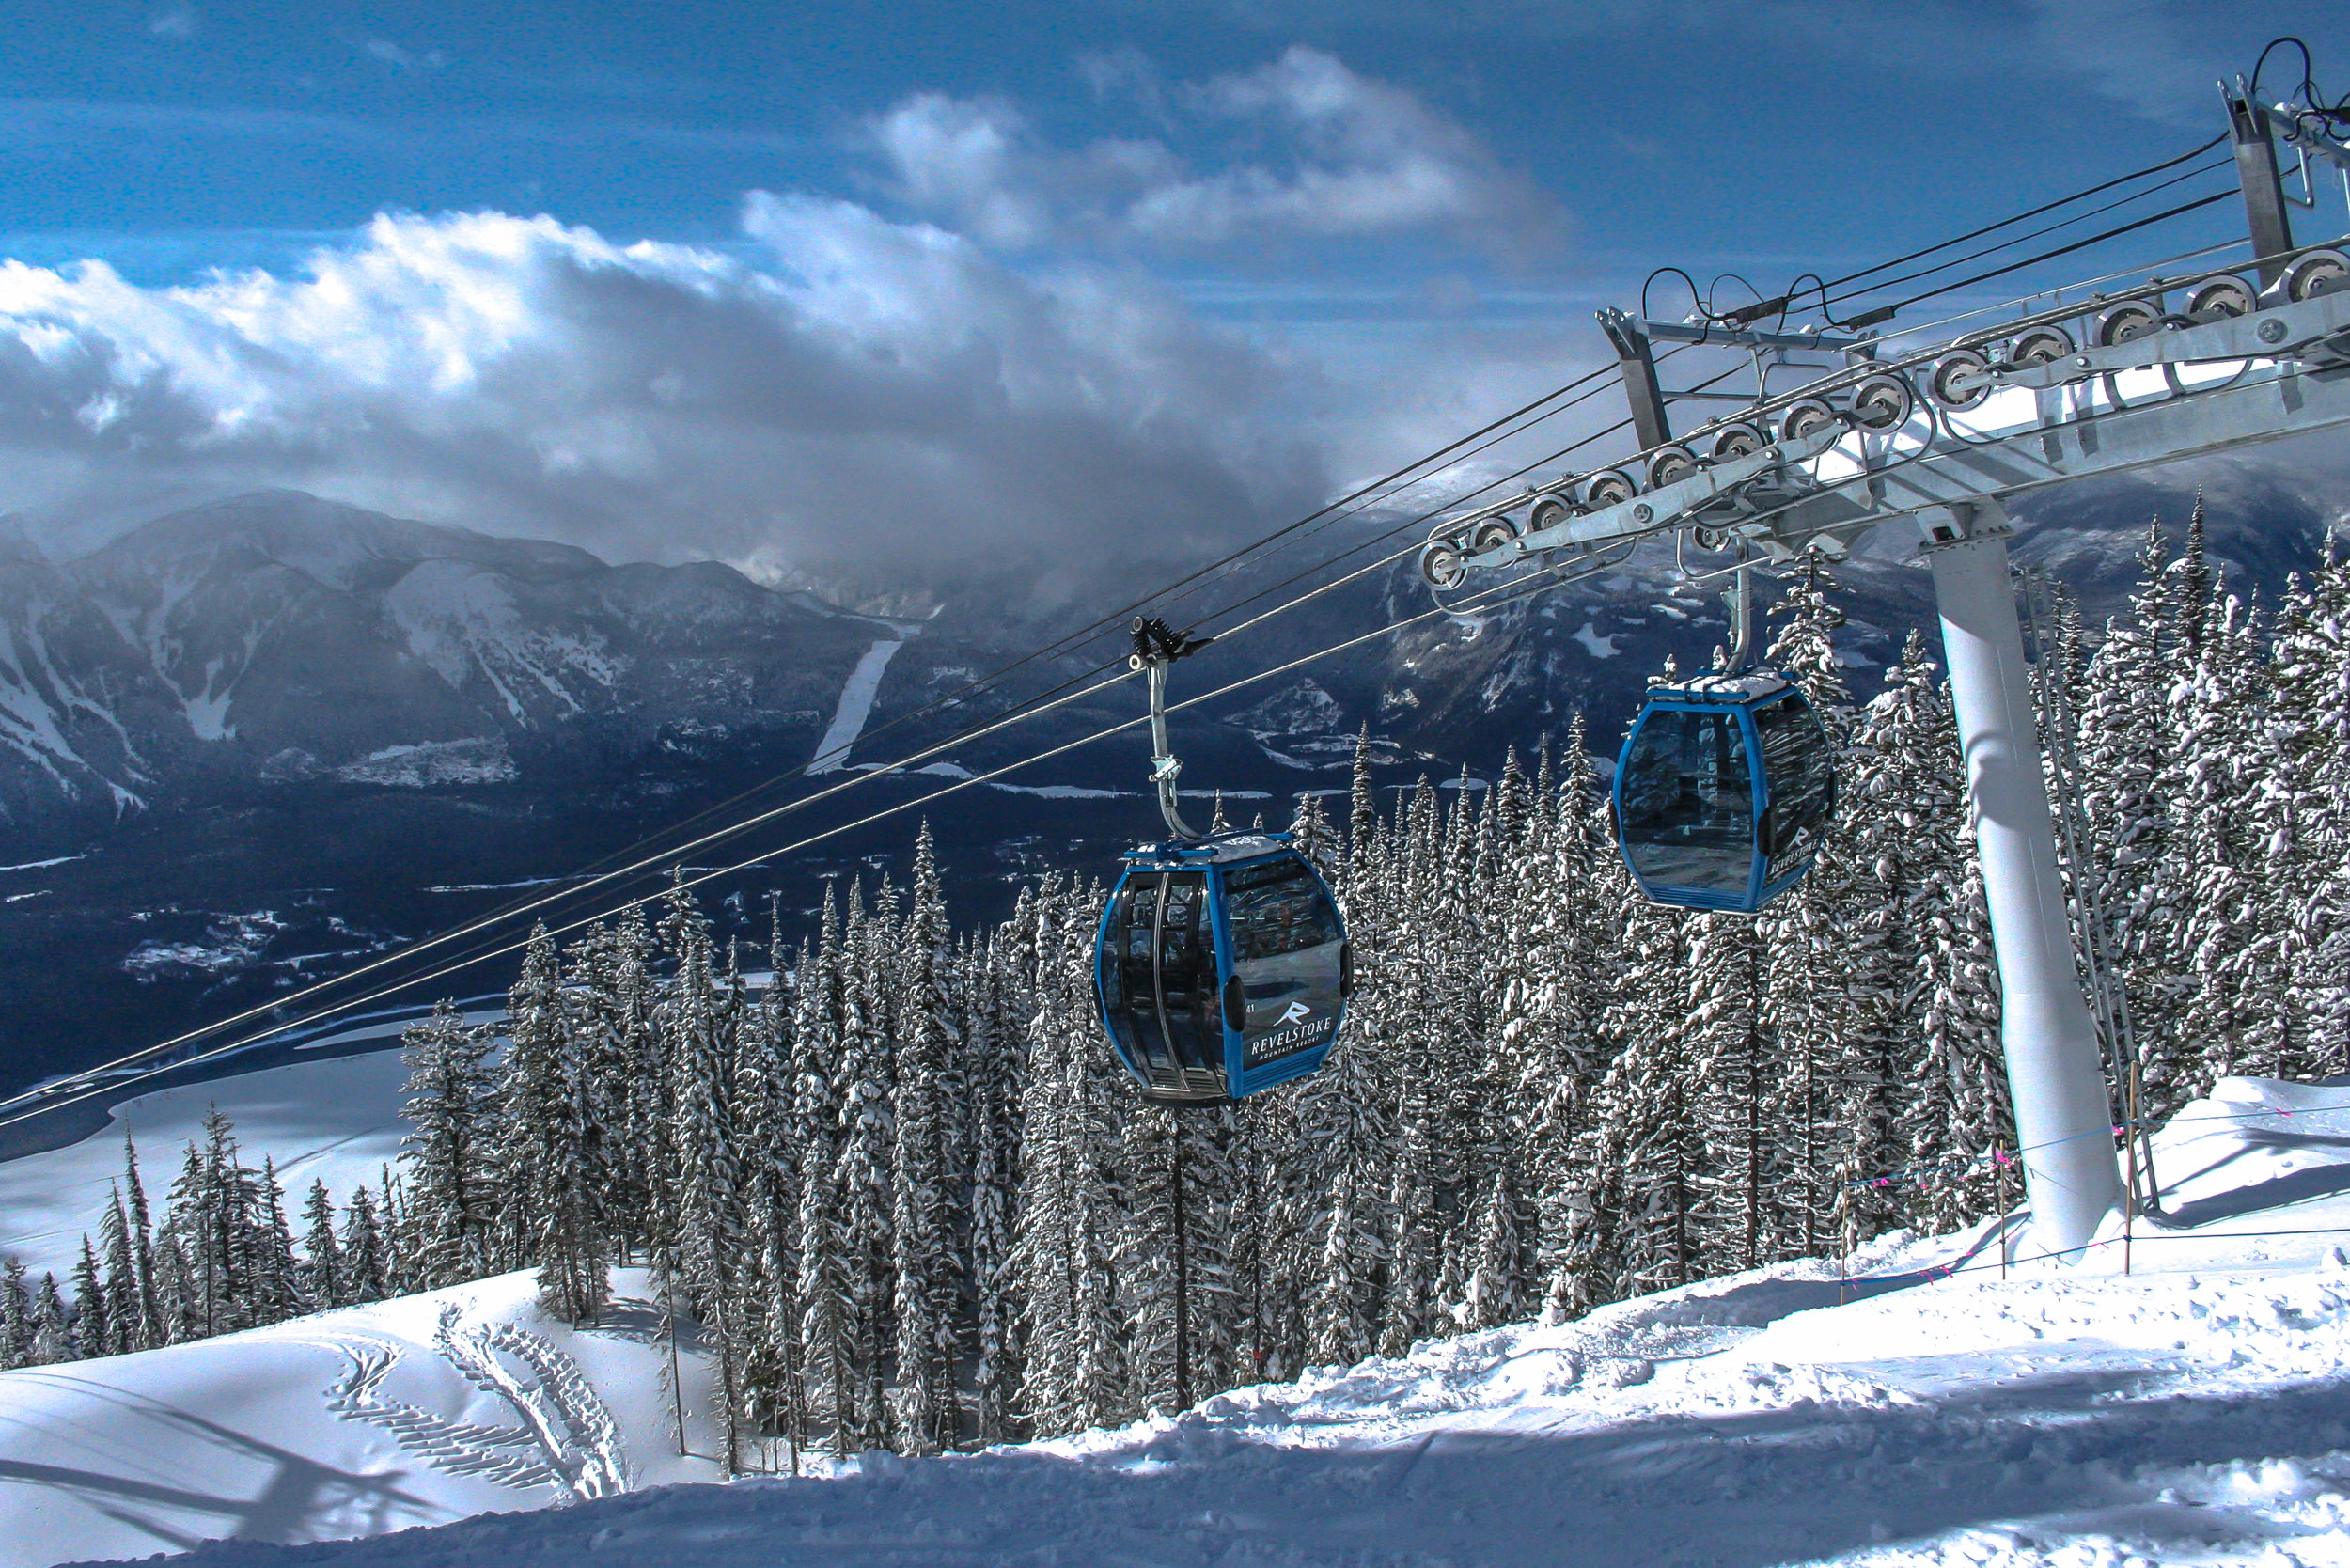 a day's skiing at spedtacular Mt Revelstoke...Noth Americas biggest vertical drop at  1713m (5620 ft)...